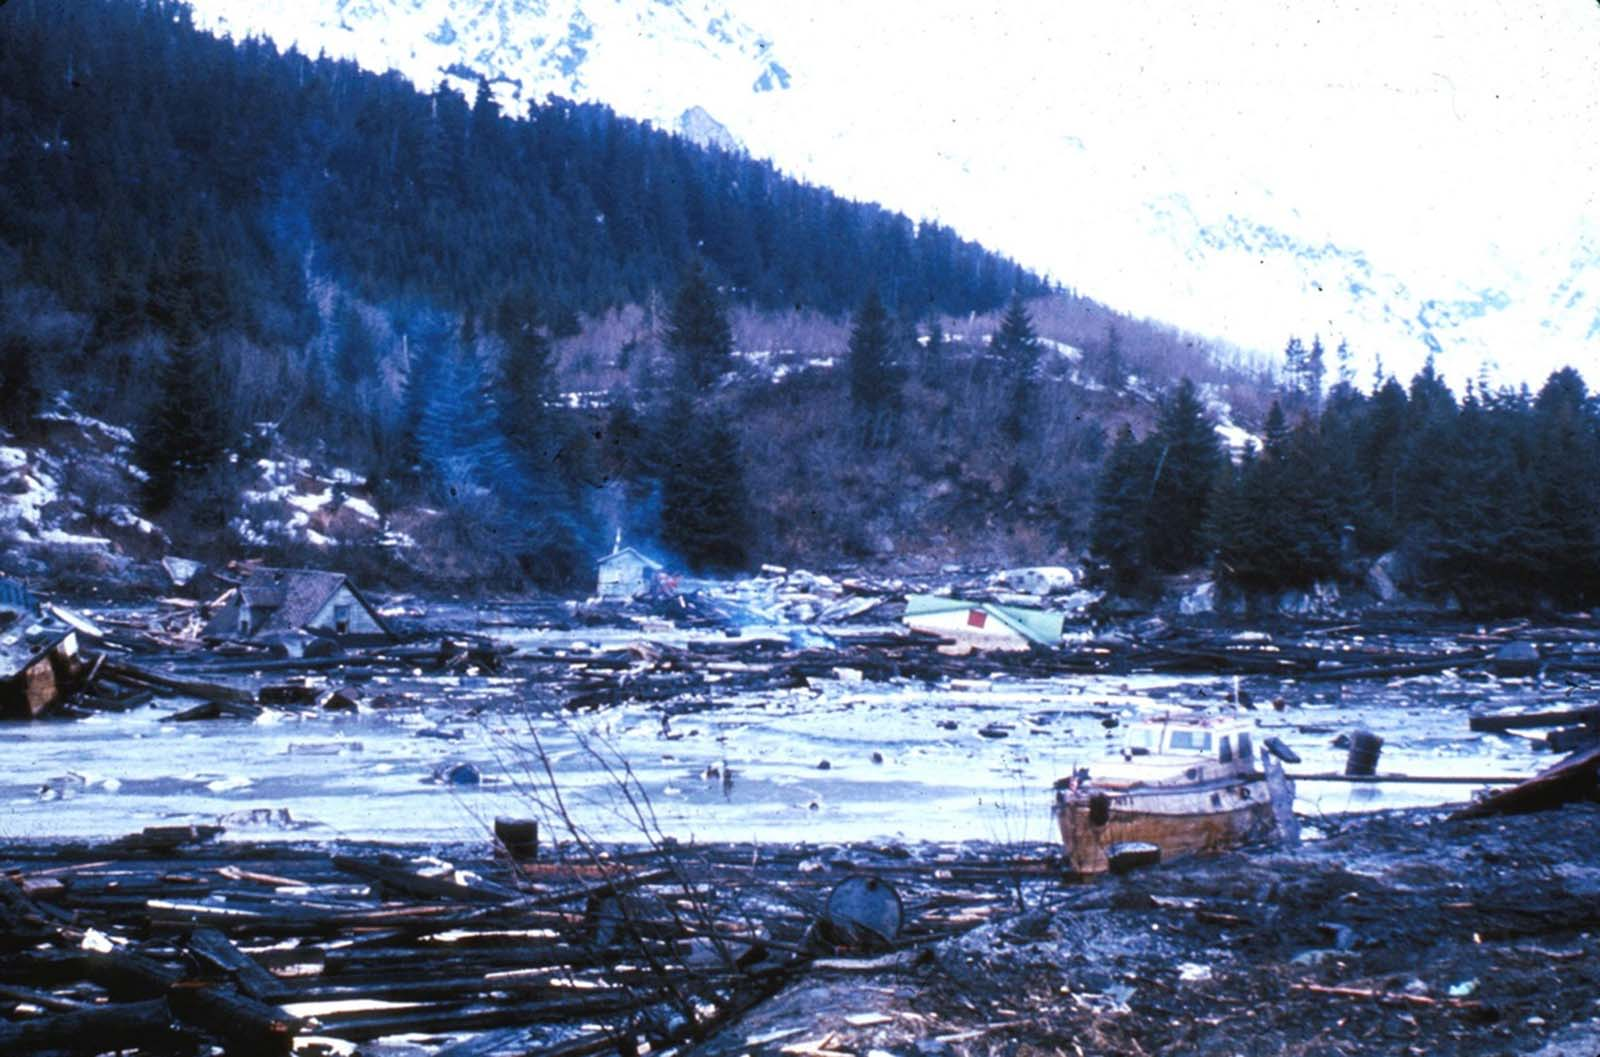 Tsunami damage and high-water line at Seward. The tsunami waves washed the snow from the lower slopes of the hillsides, and the height of the highest wave is marked by the sharp